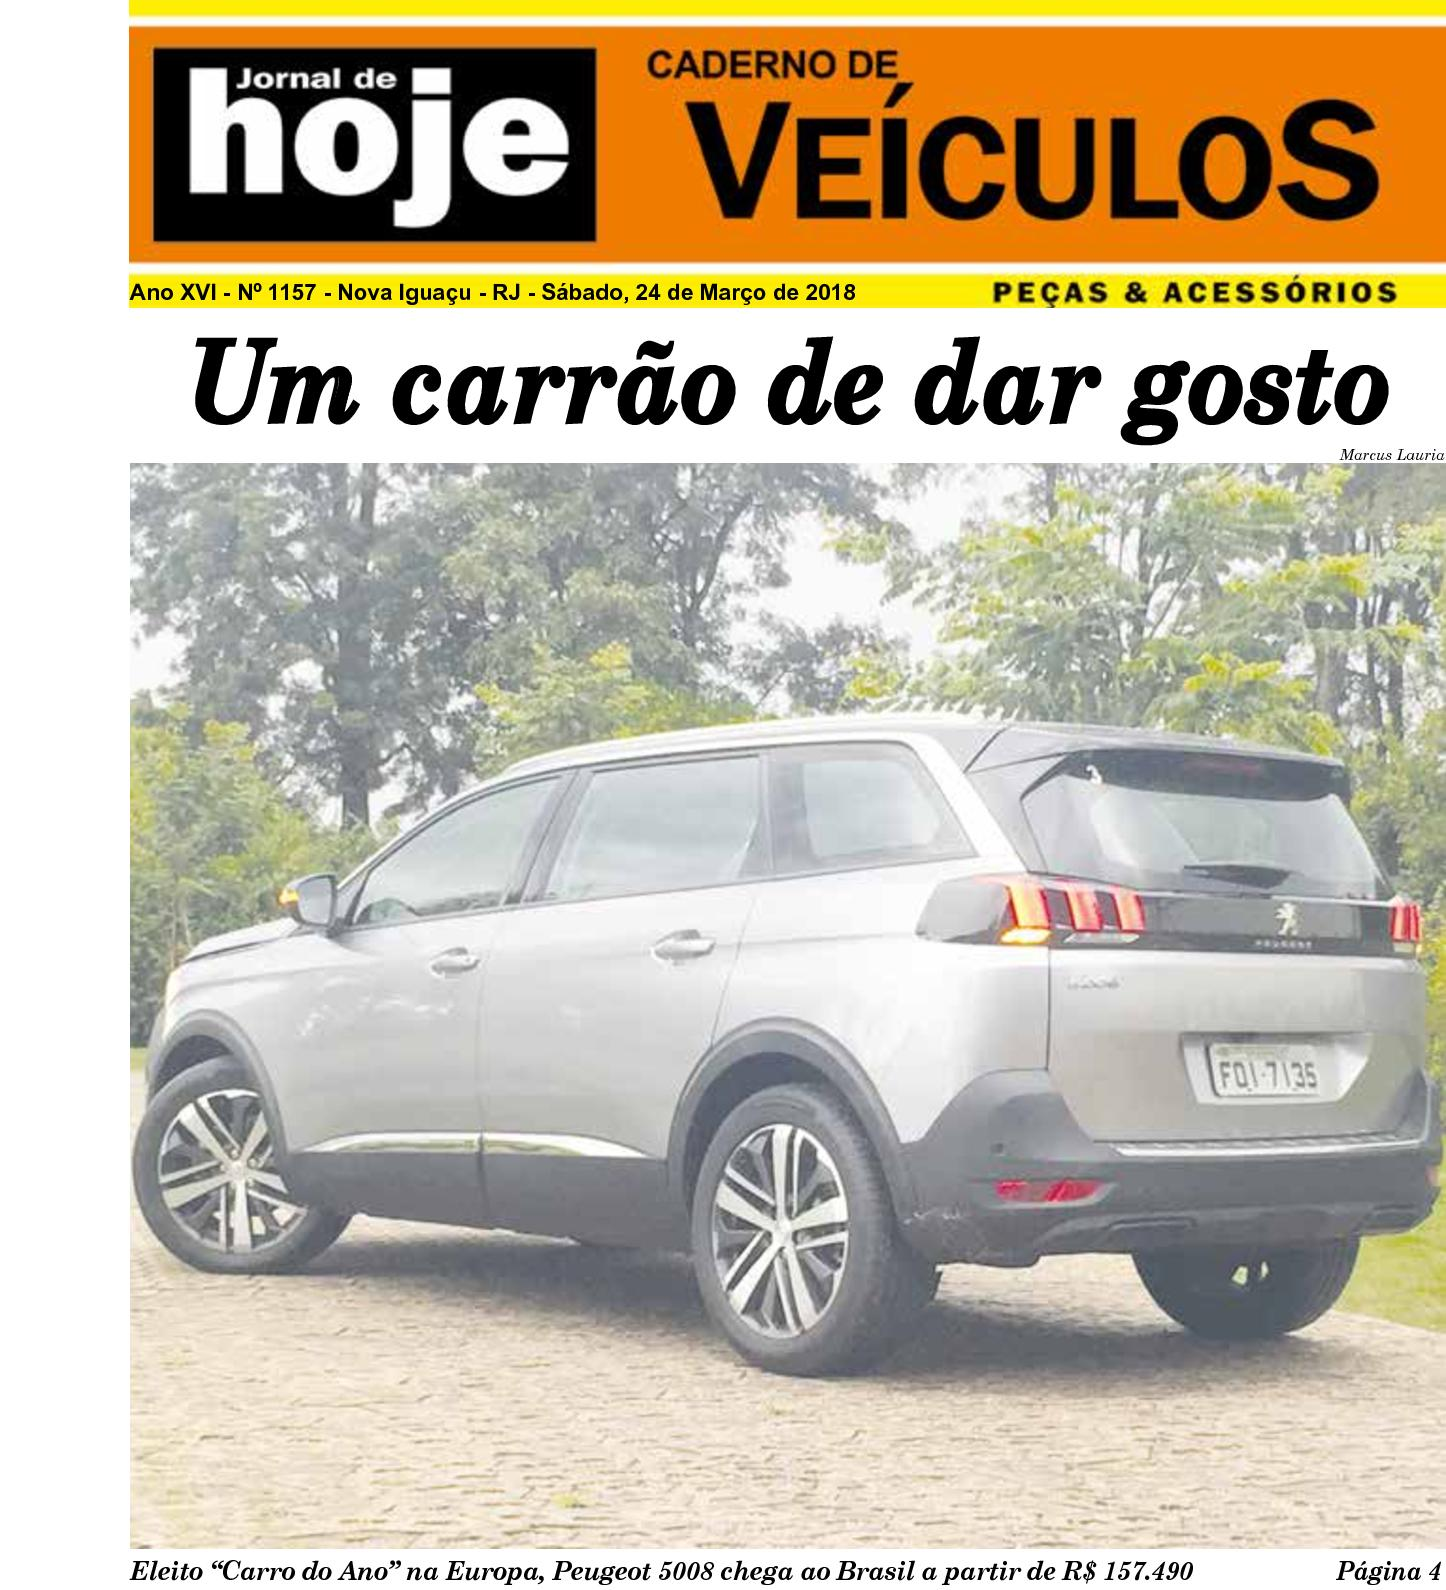 Veiculos 240318